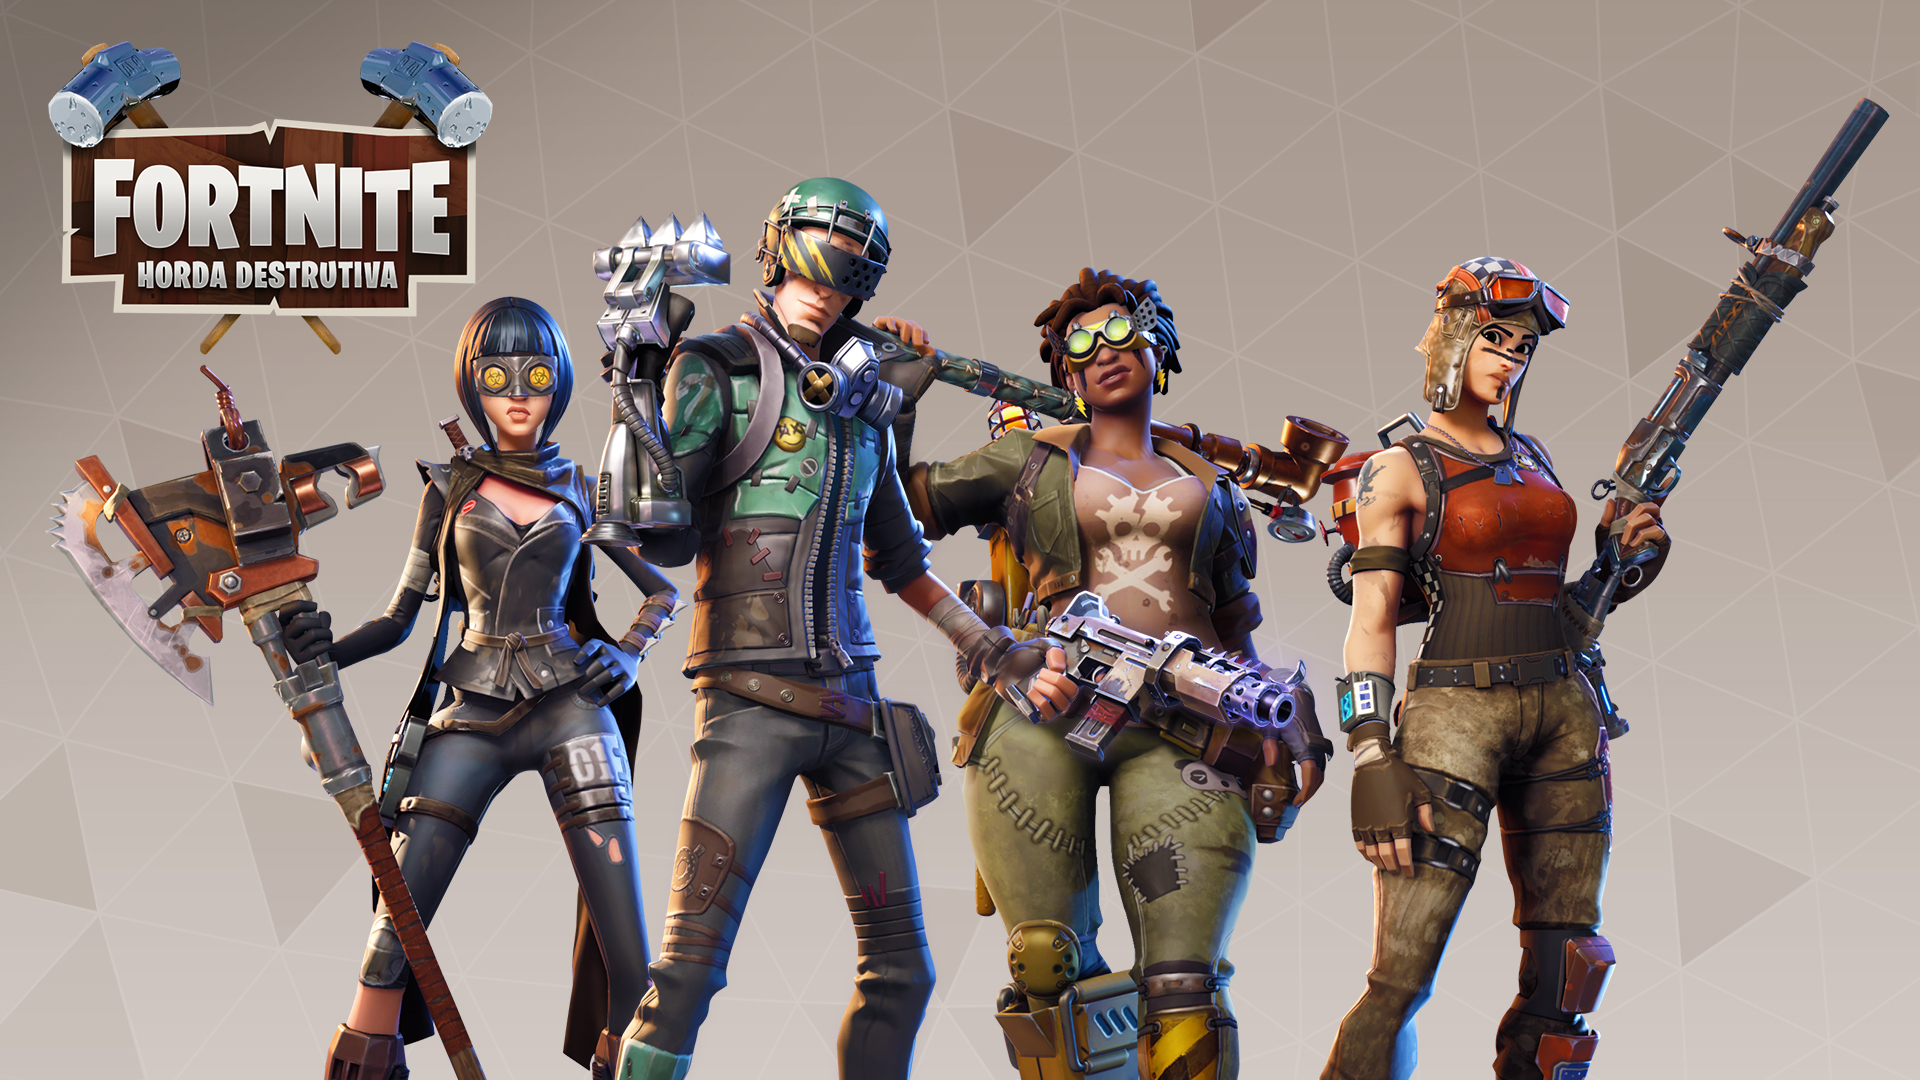 Fortnite%2Fblog%2Fea-1-7-patch-notes%2FBR_PT-HB-Heroes-1920x1080-6bed0dfc8172583fdaef31ef8bd98b33fb35be2f